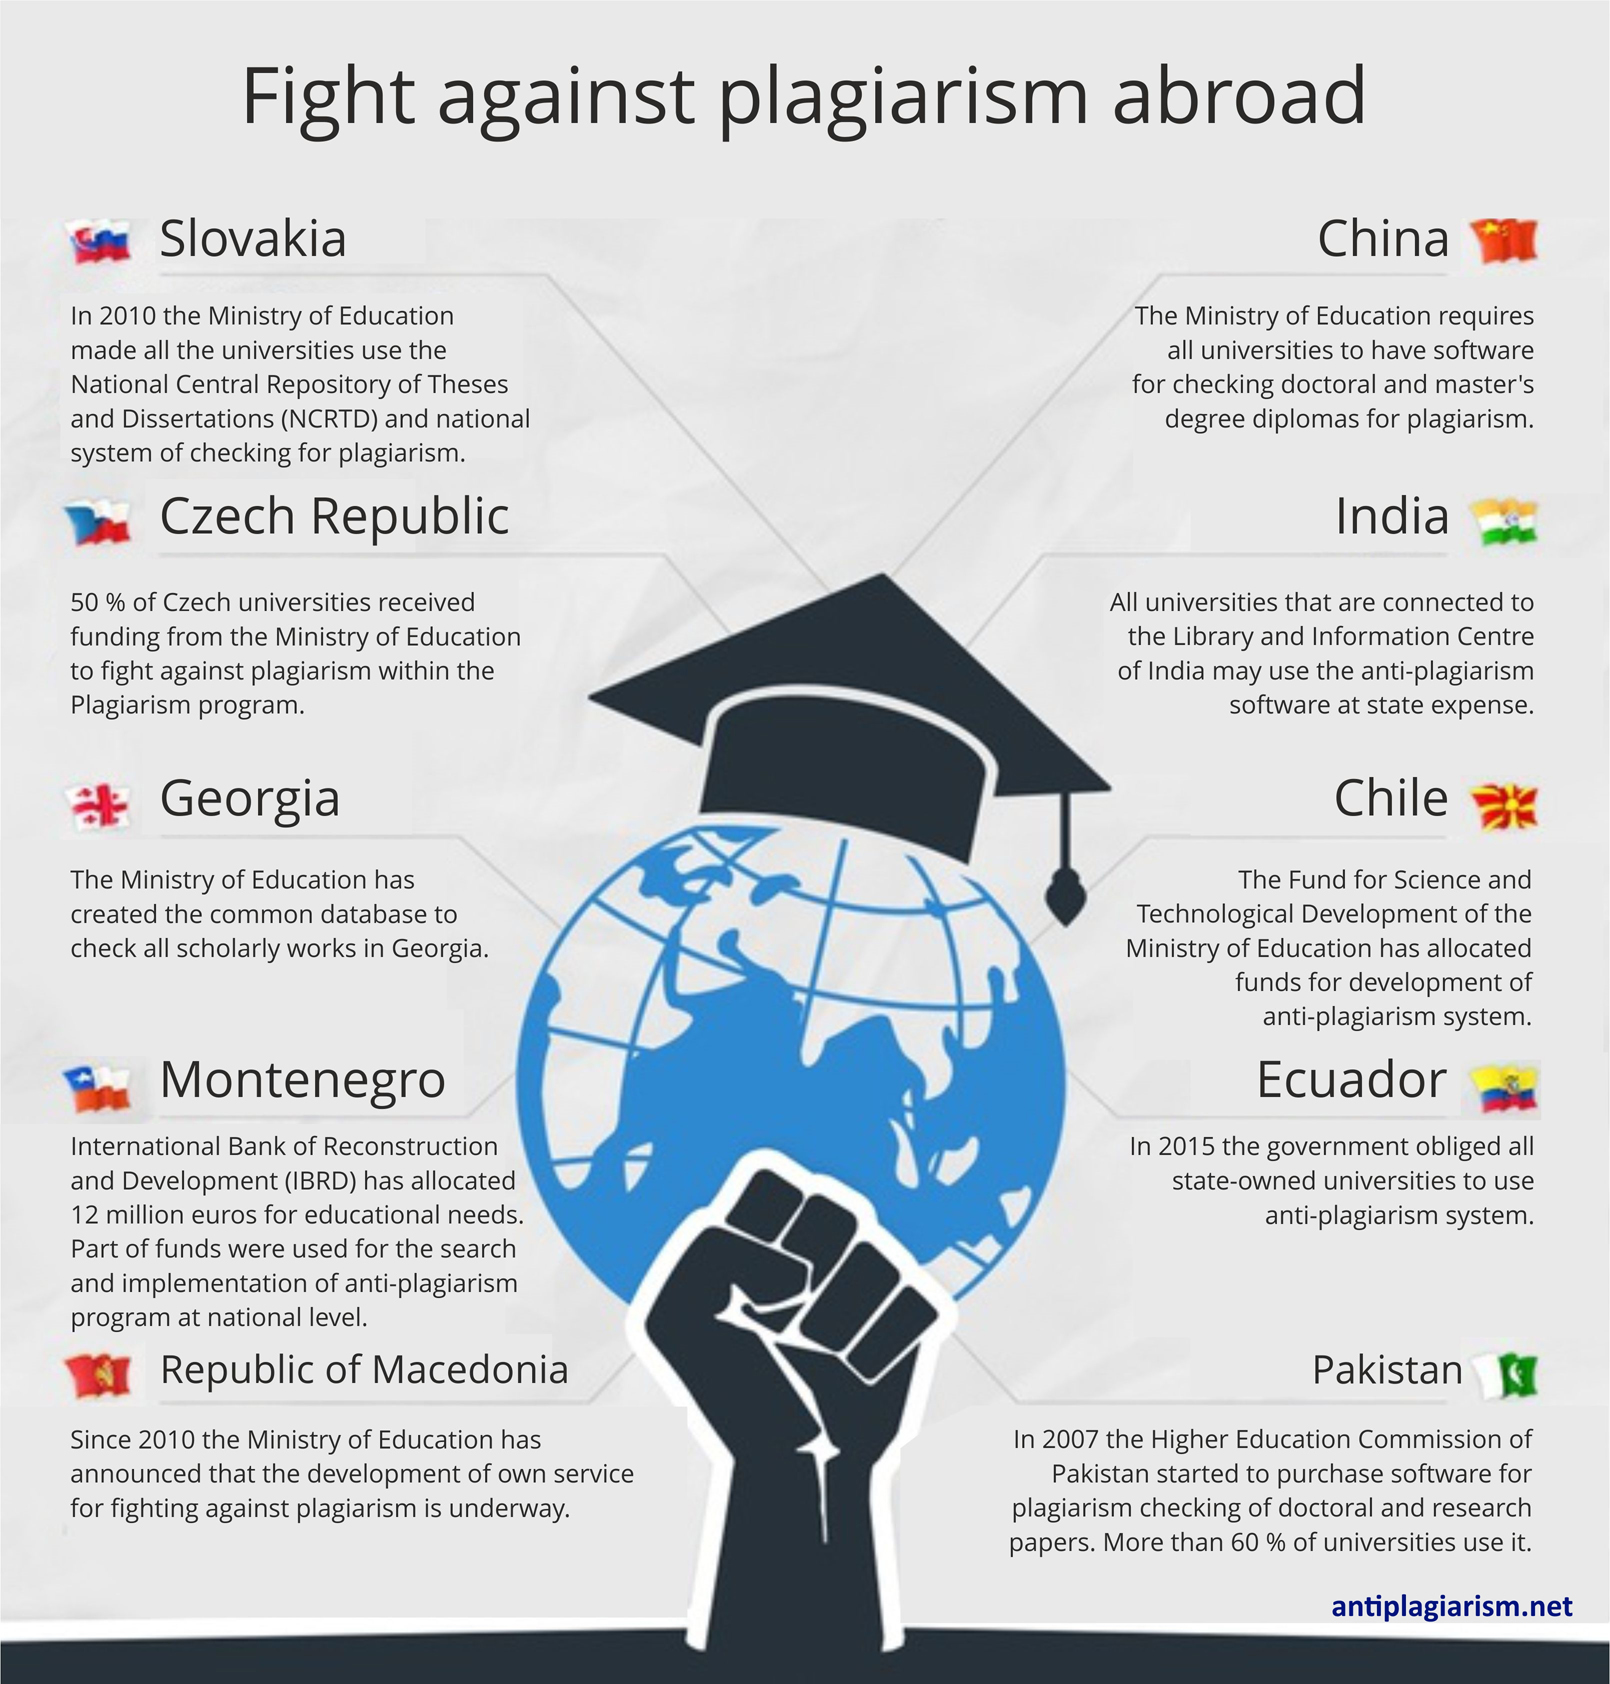 fight-against-plagiarism-abroad-infographic-plaza